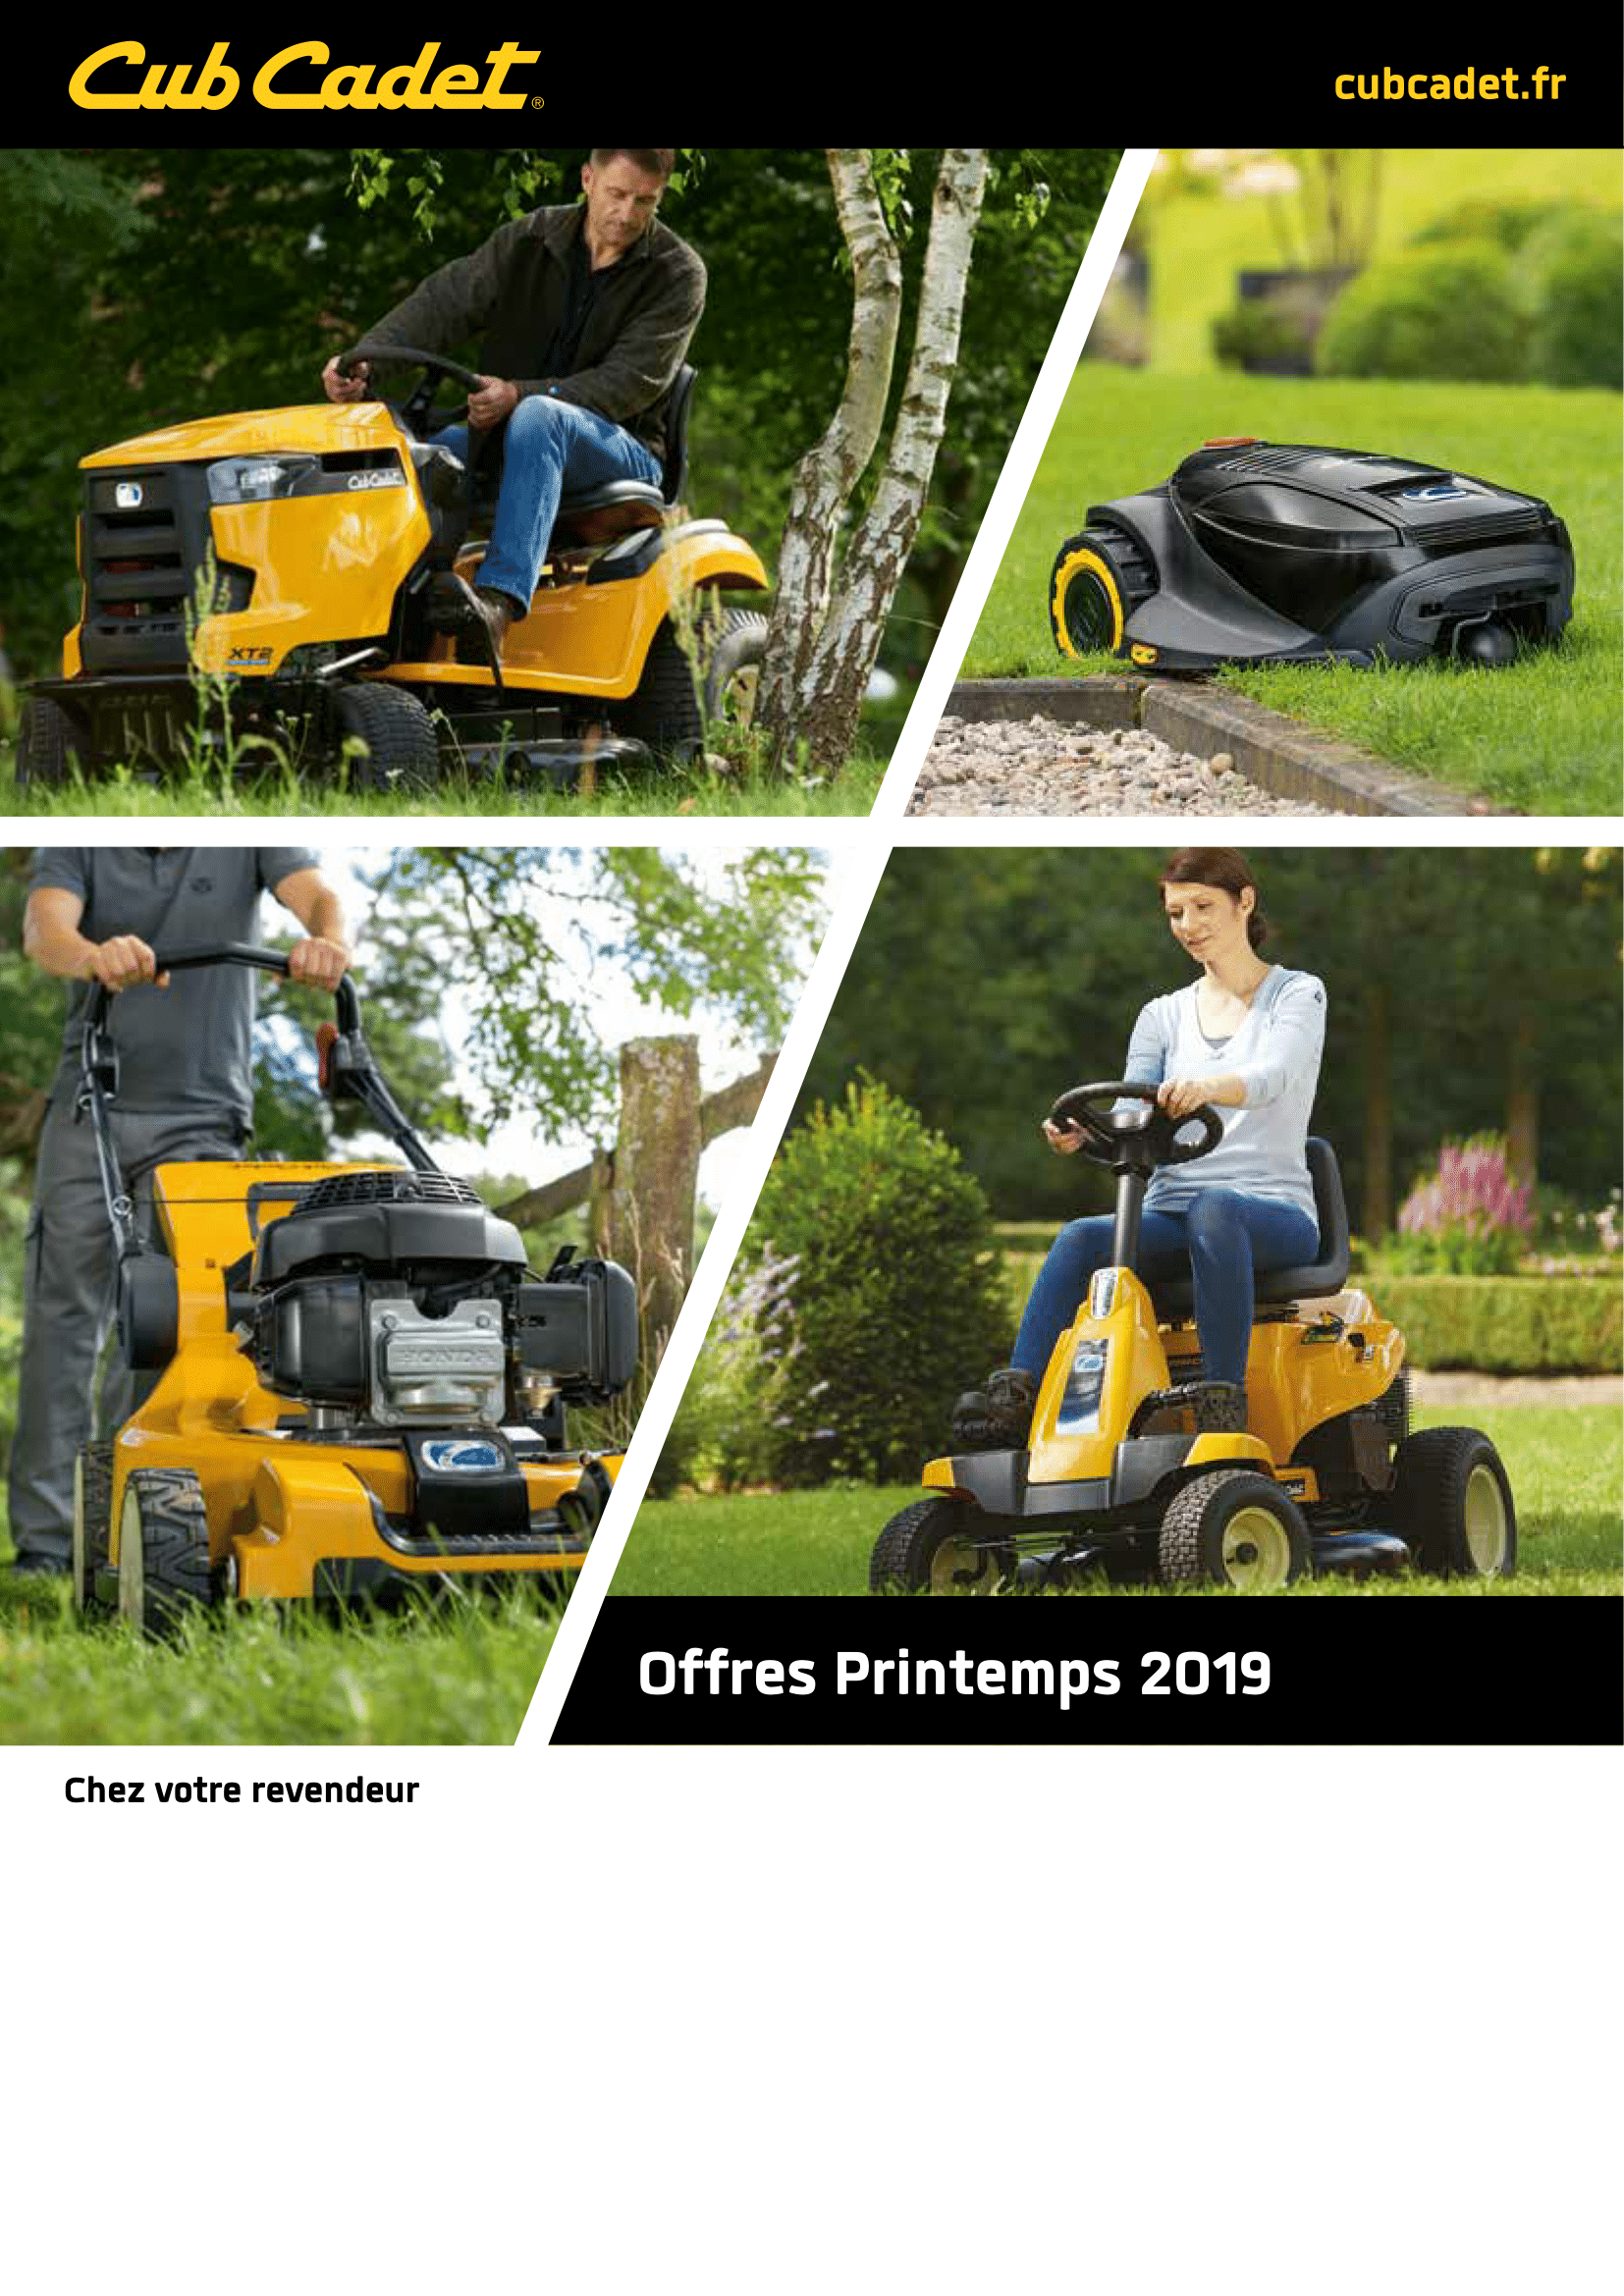 mailing cubcadet 2019-01